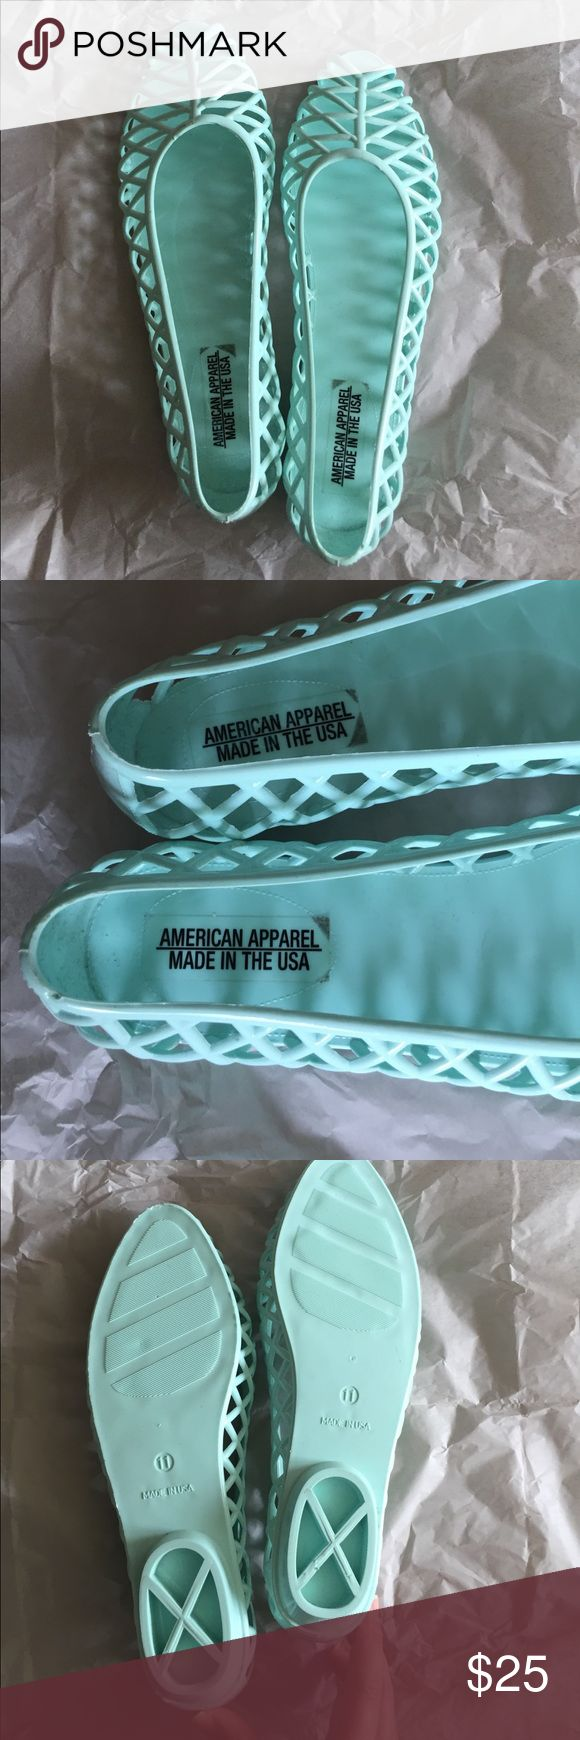 Black jelly sandals american apparel - American Apparel Jellies In Baby Blue American Apparel Jellies In Baby Blue Size 11